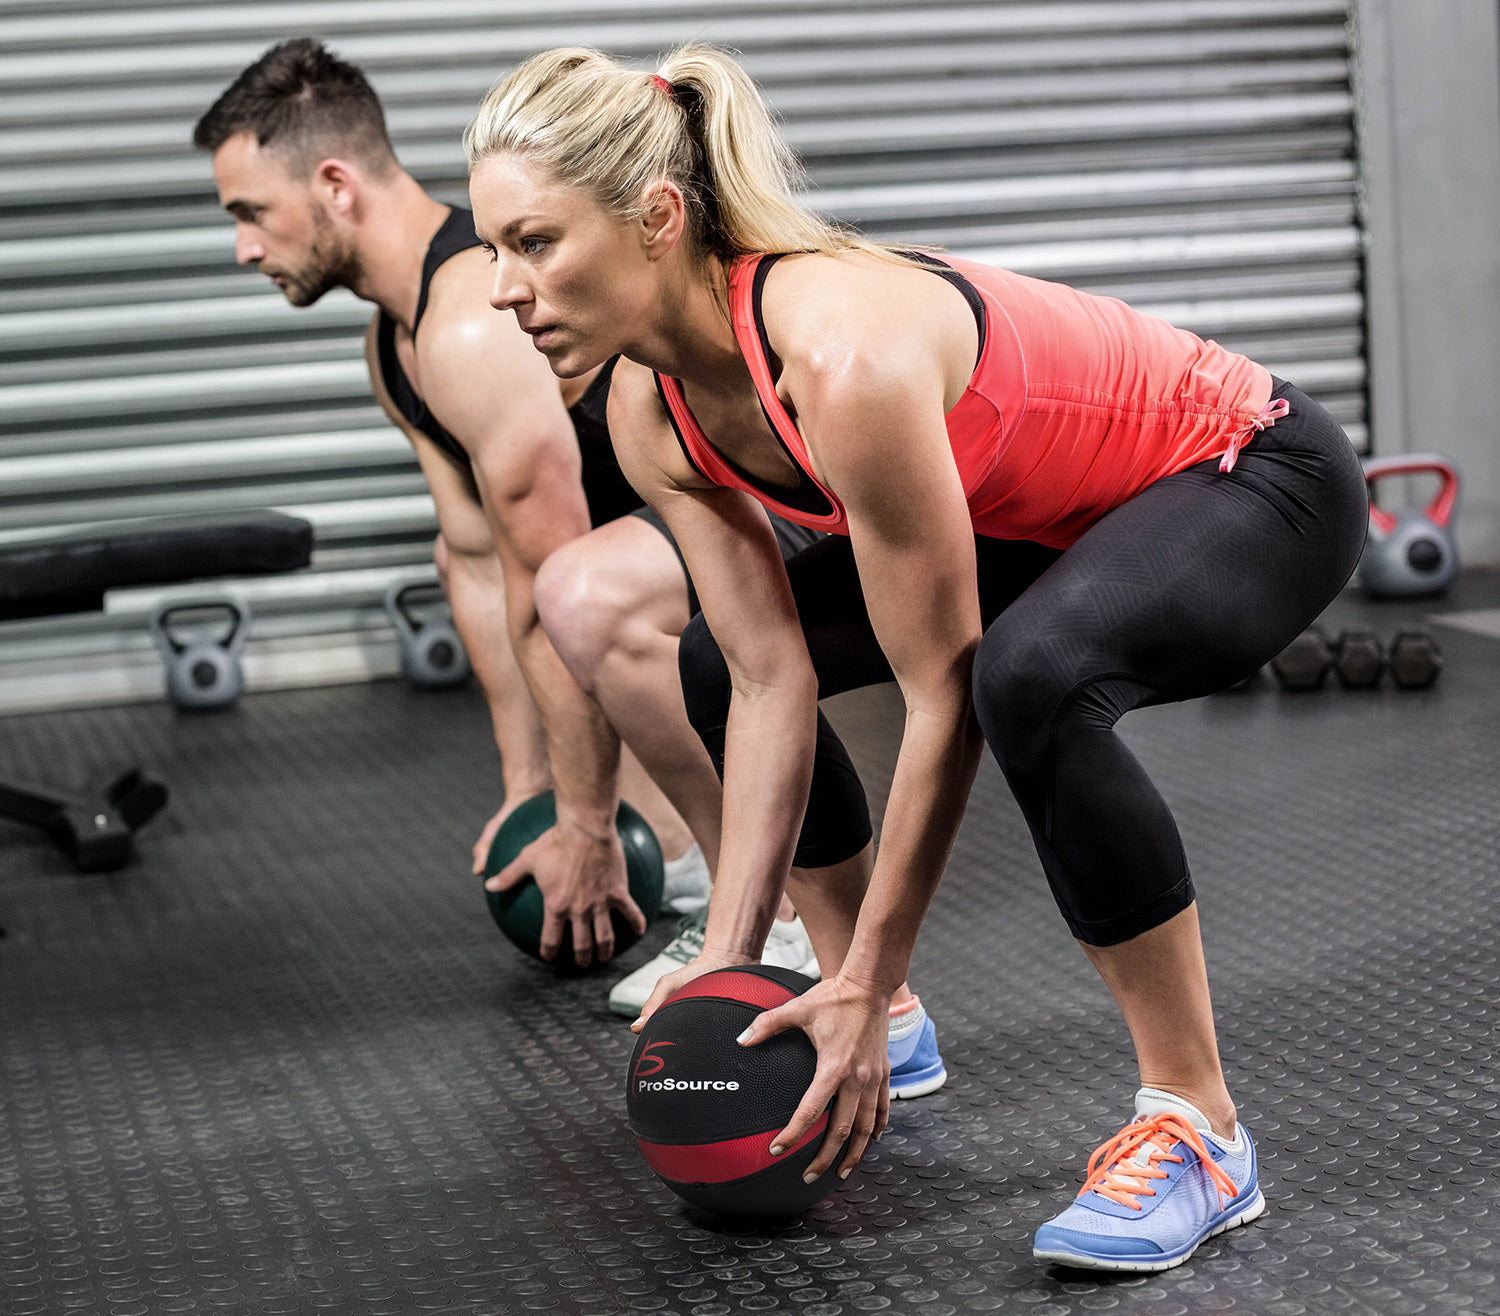 ProSource How to Actually Keep Your New Year's Resolution to Get in Shape - Weighted Medicine Ball | Buy Weighted Ball